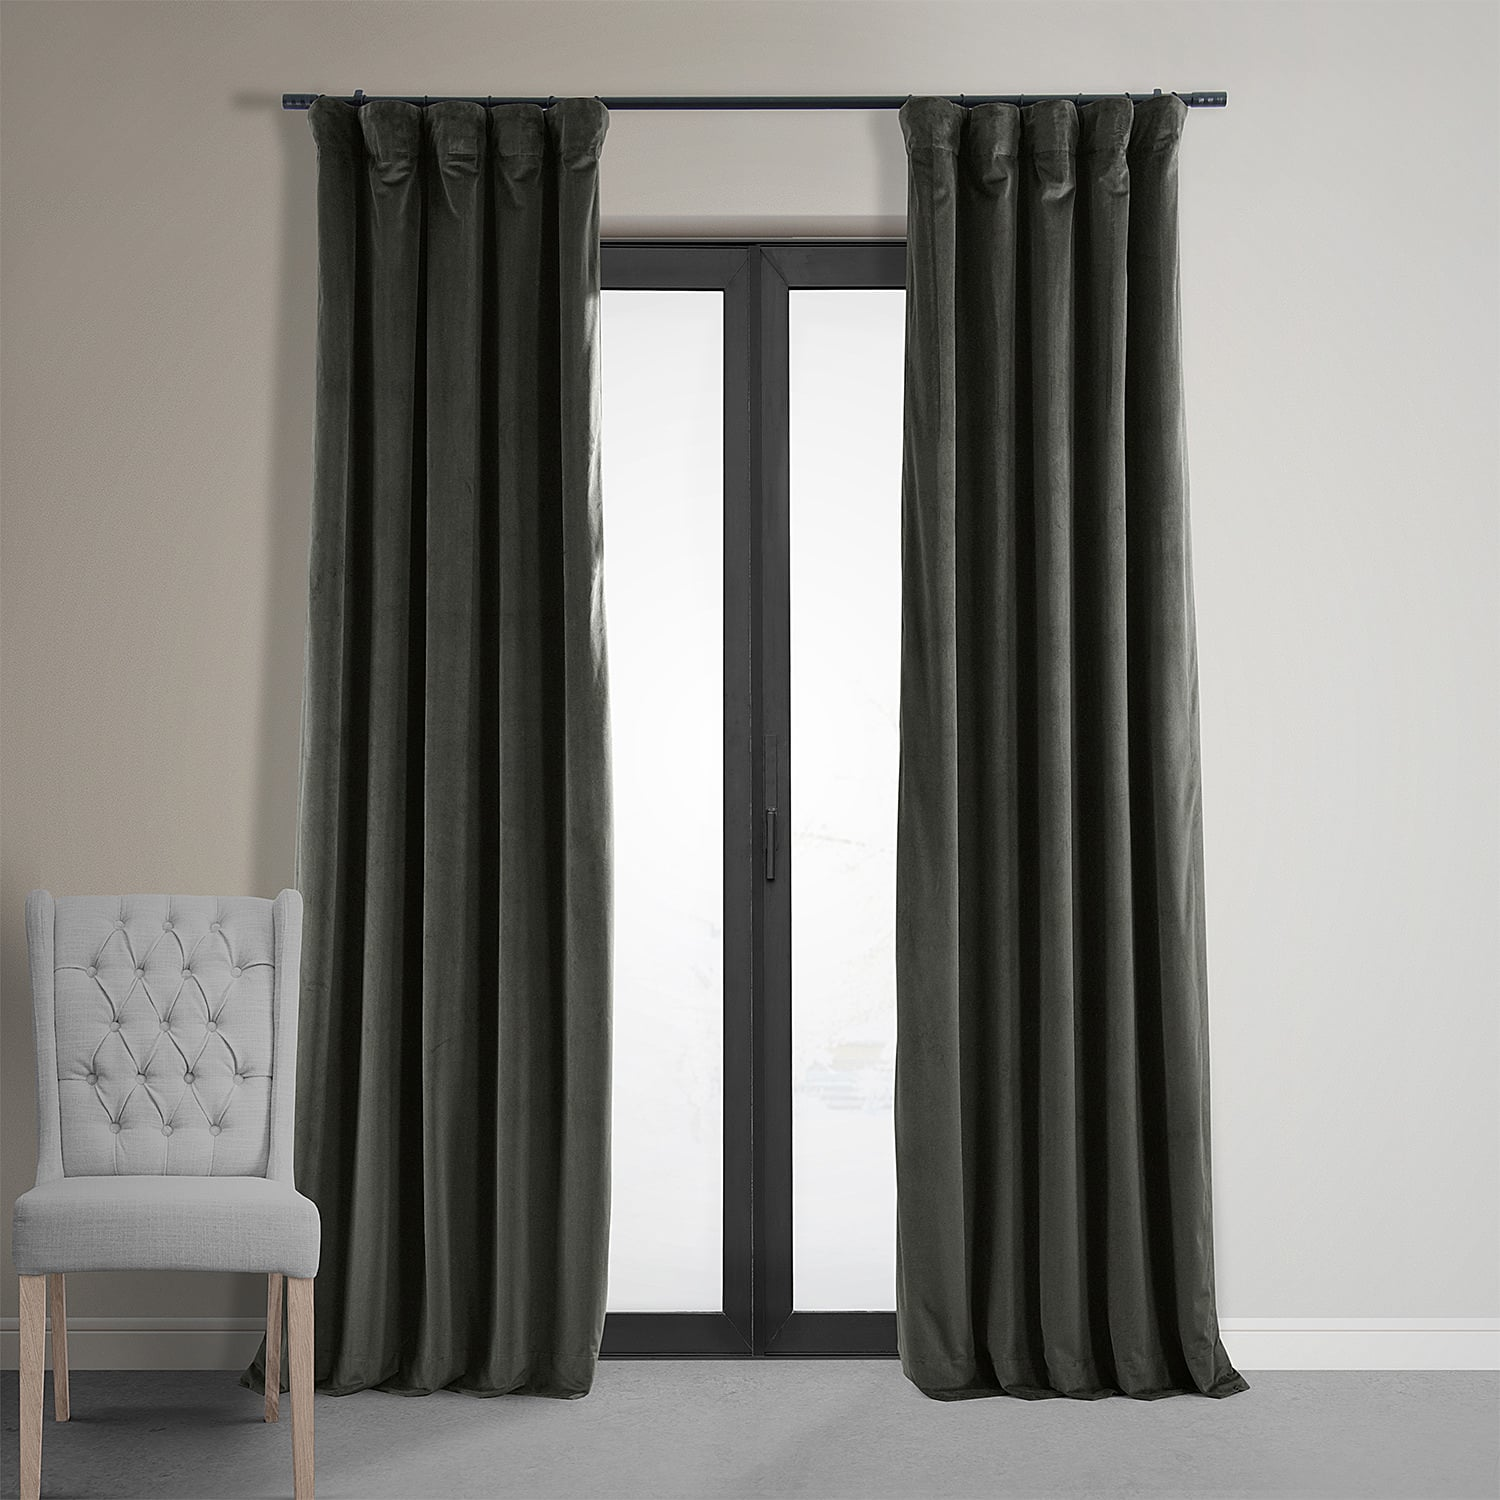 Beautiful Signature Gunmetal Grey Blackout Velvet Curtains TO62